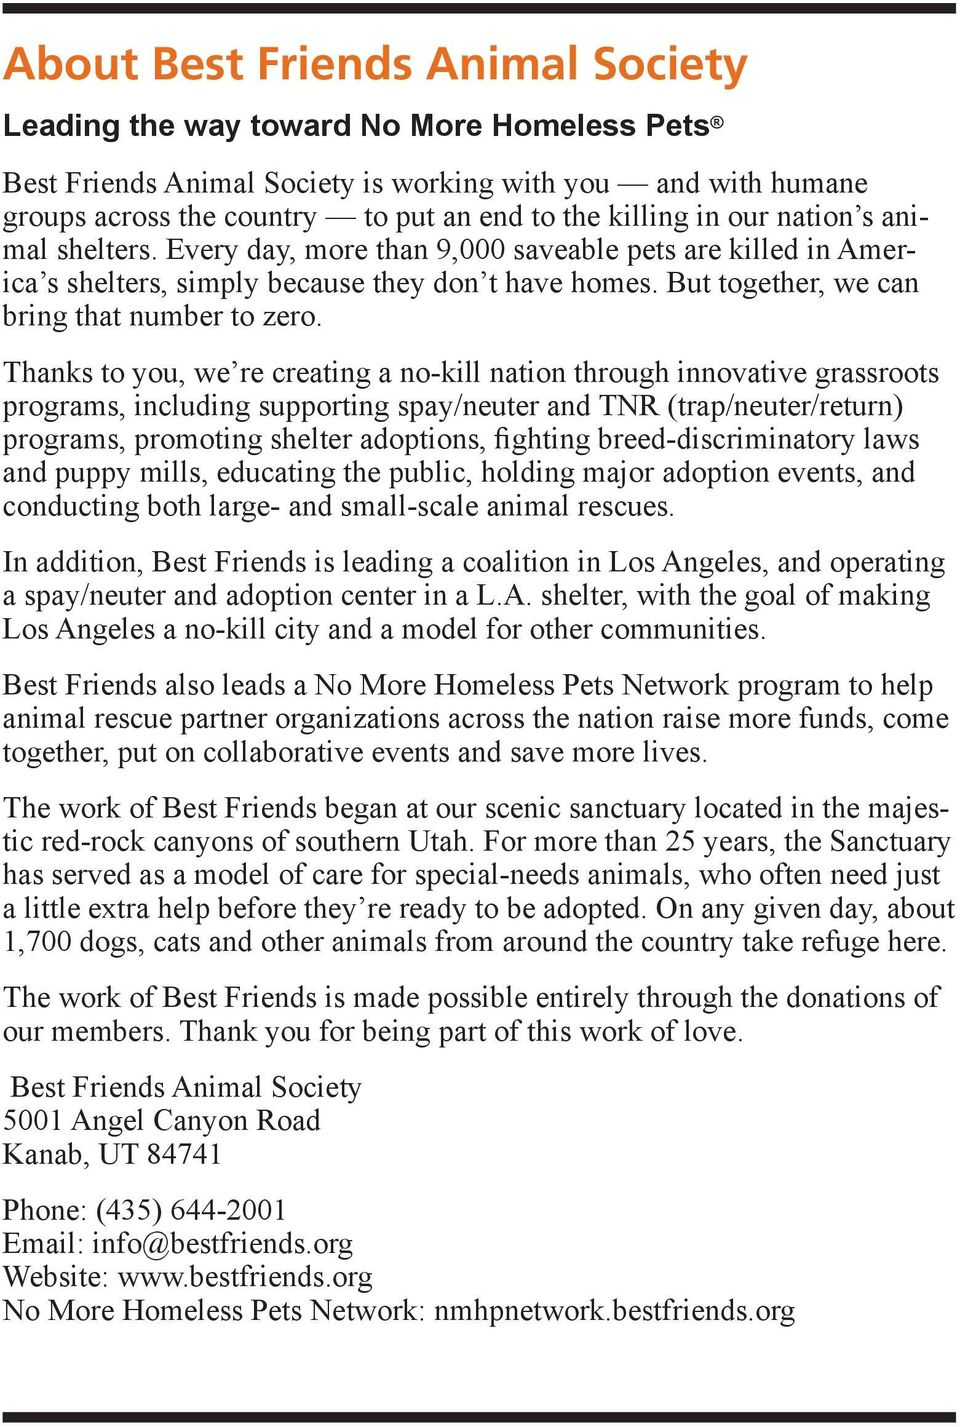 Thanks to you, we re creating a no-kill nation through innovative grassroots programs, including supporting spay/neuter and TNR (trap/neuter/return) programs, promoting shelter adoptions, fighting